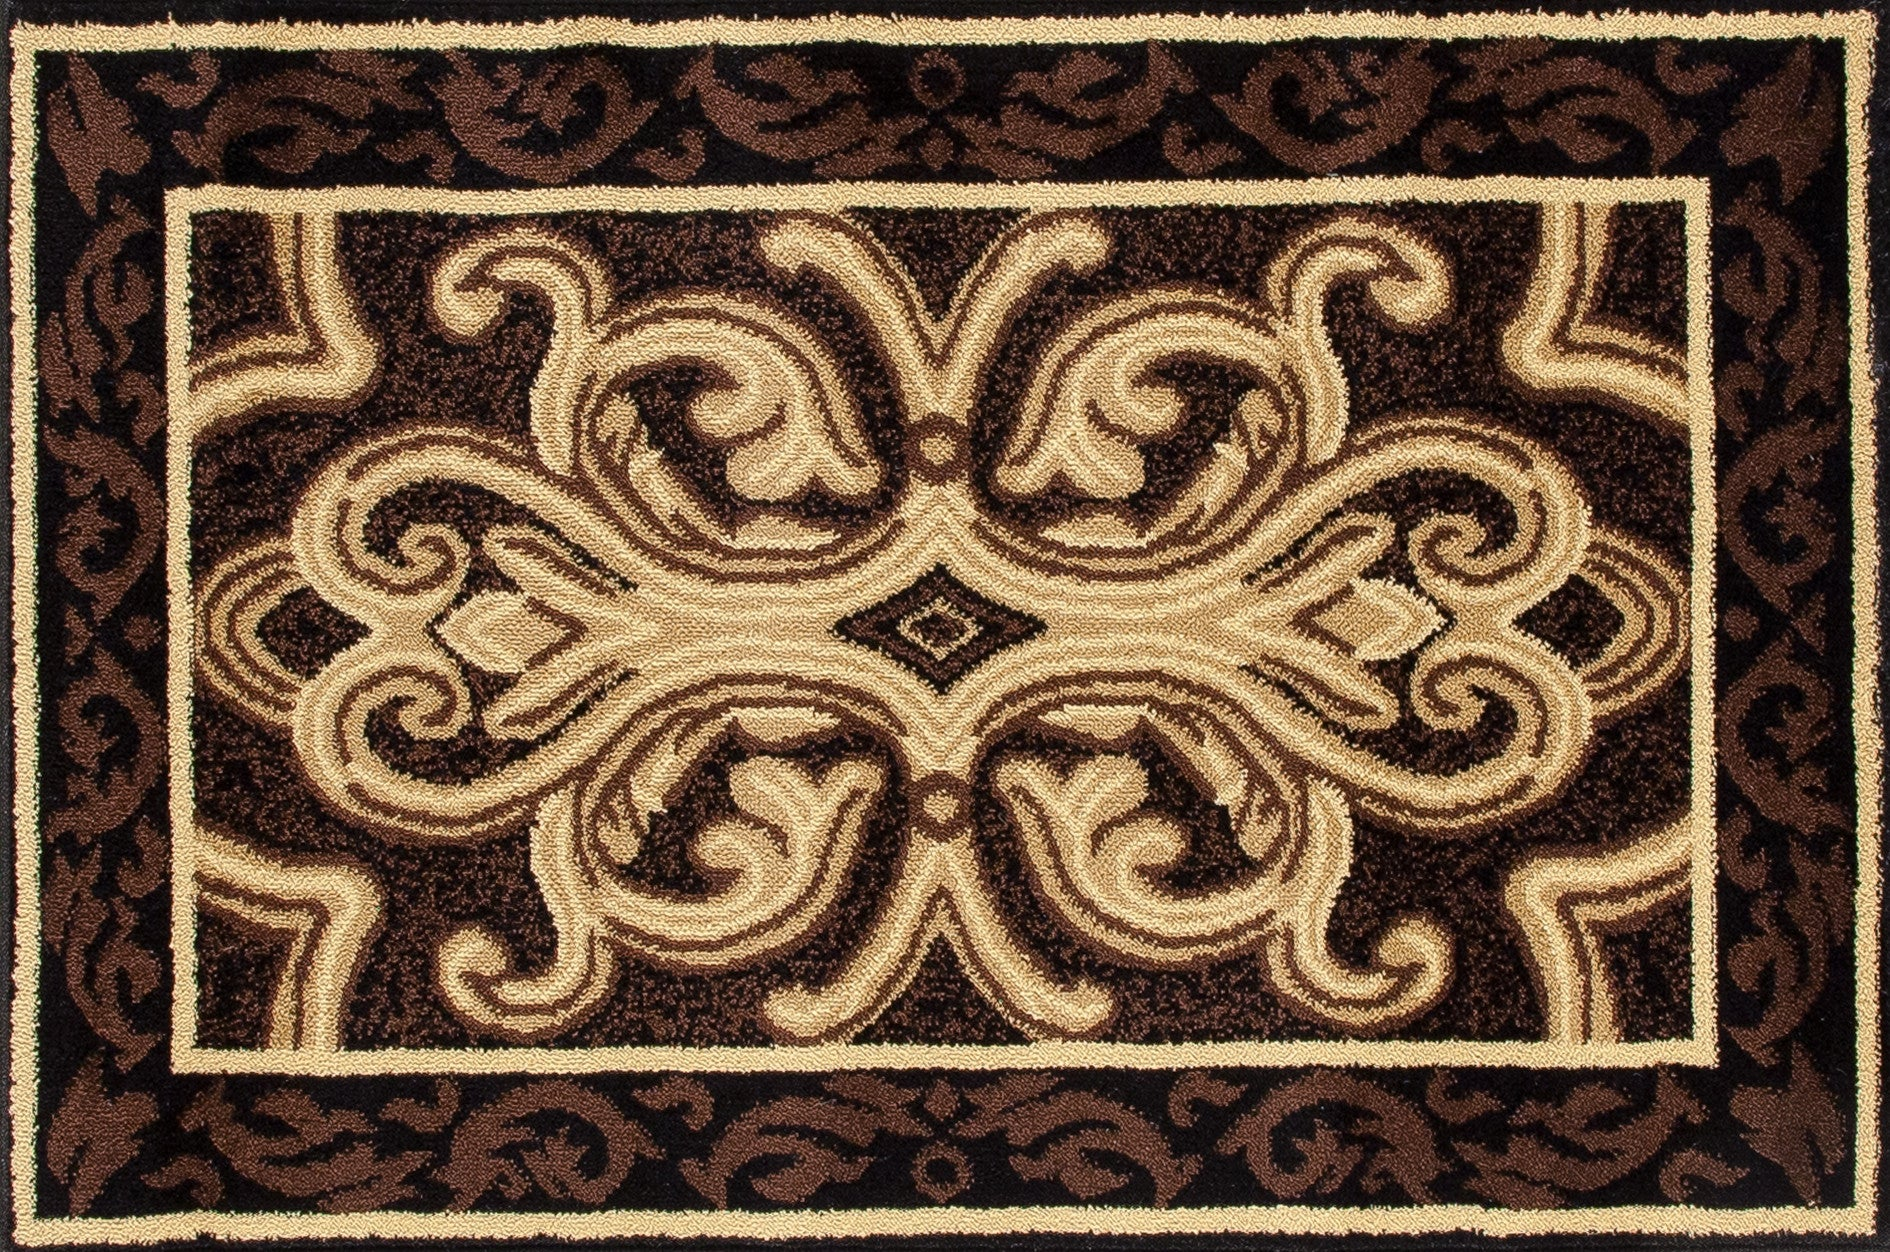 Art Carpet Hearth 2804 Brown/Black Area Rug main image